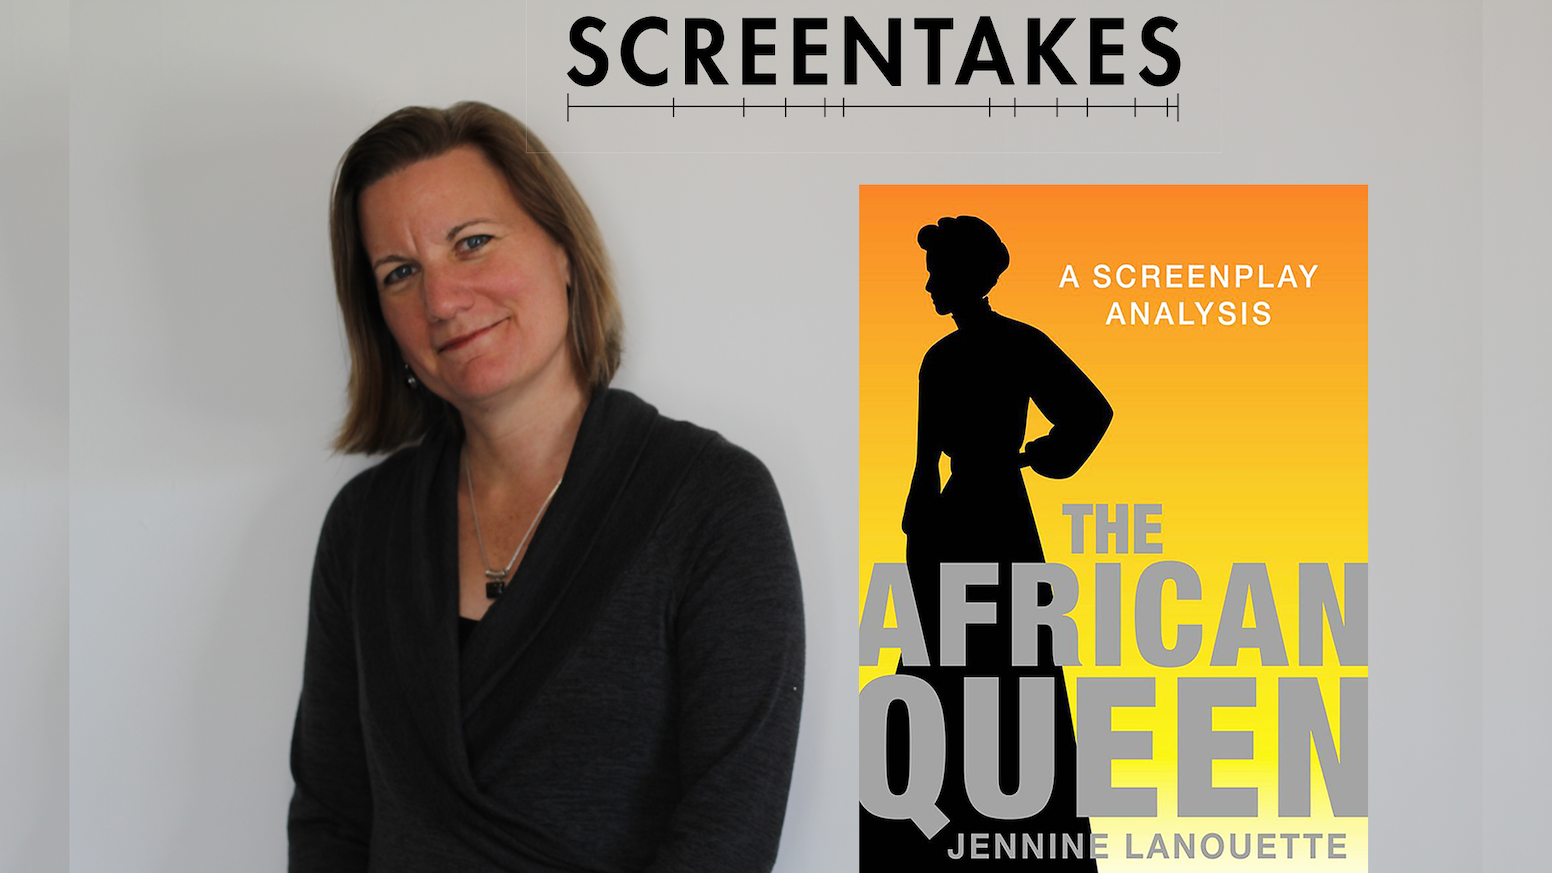 Screentakes media rich ebooks on screenplay analysis by jennine for film fans and film professionals alike the only media rich ebooks revealing the art of screenwriting by analyzing great films fandeluxe Choice Image